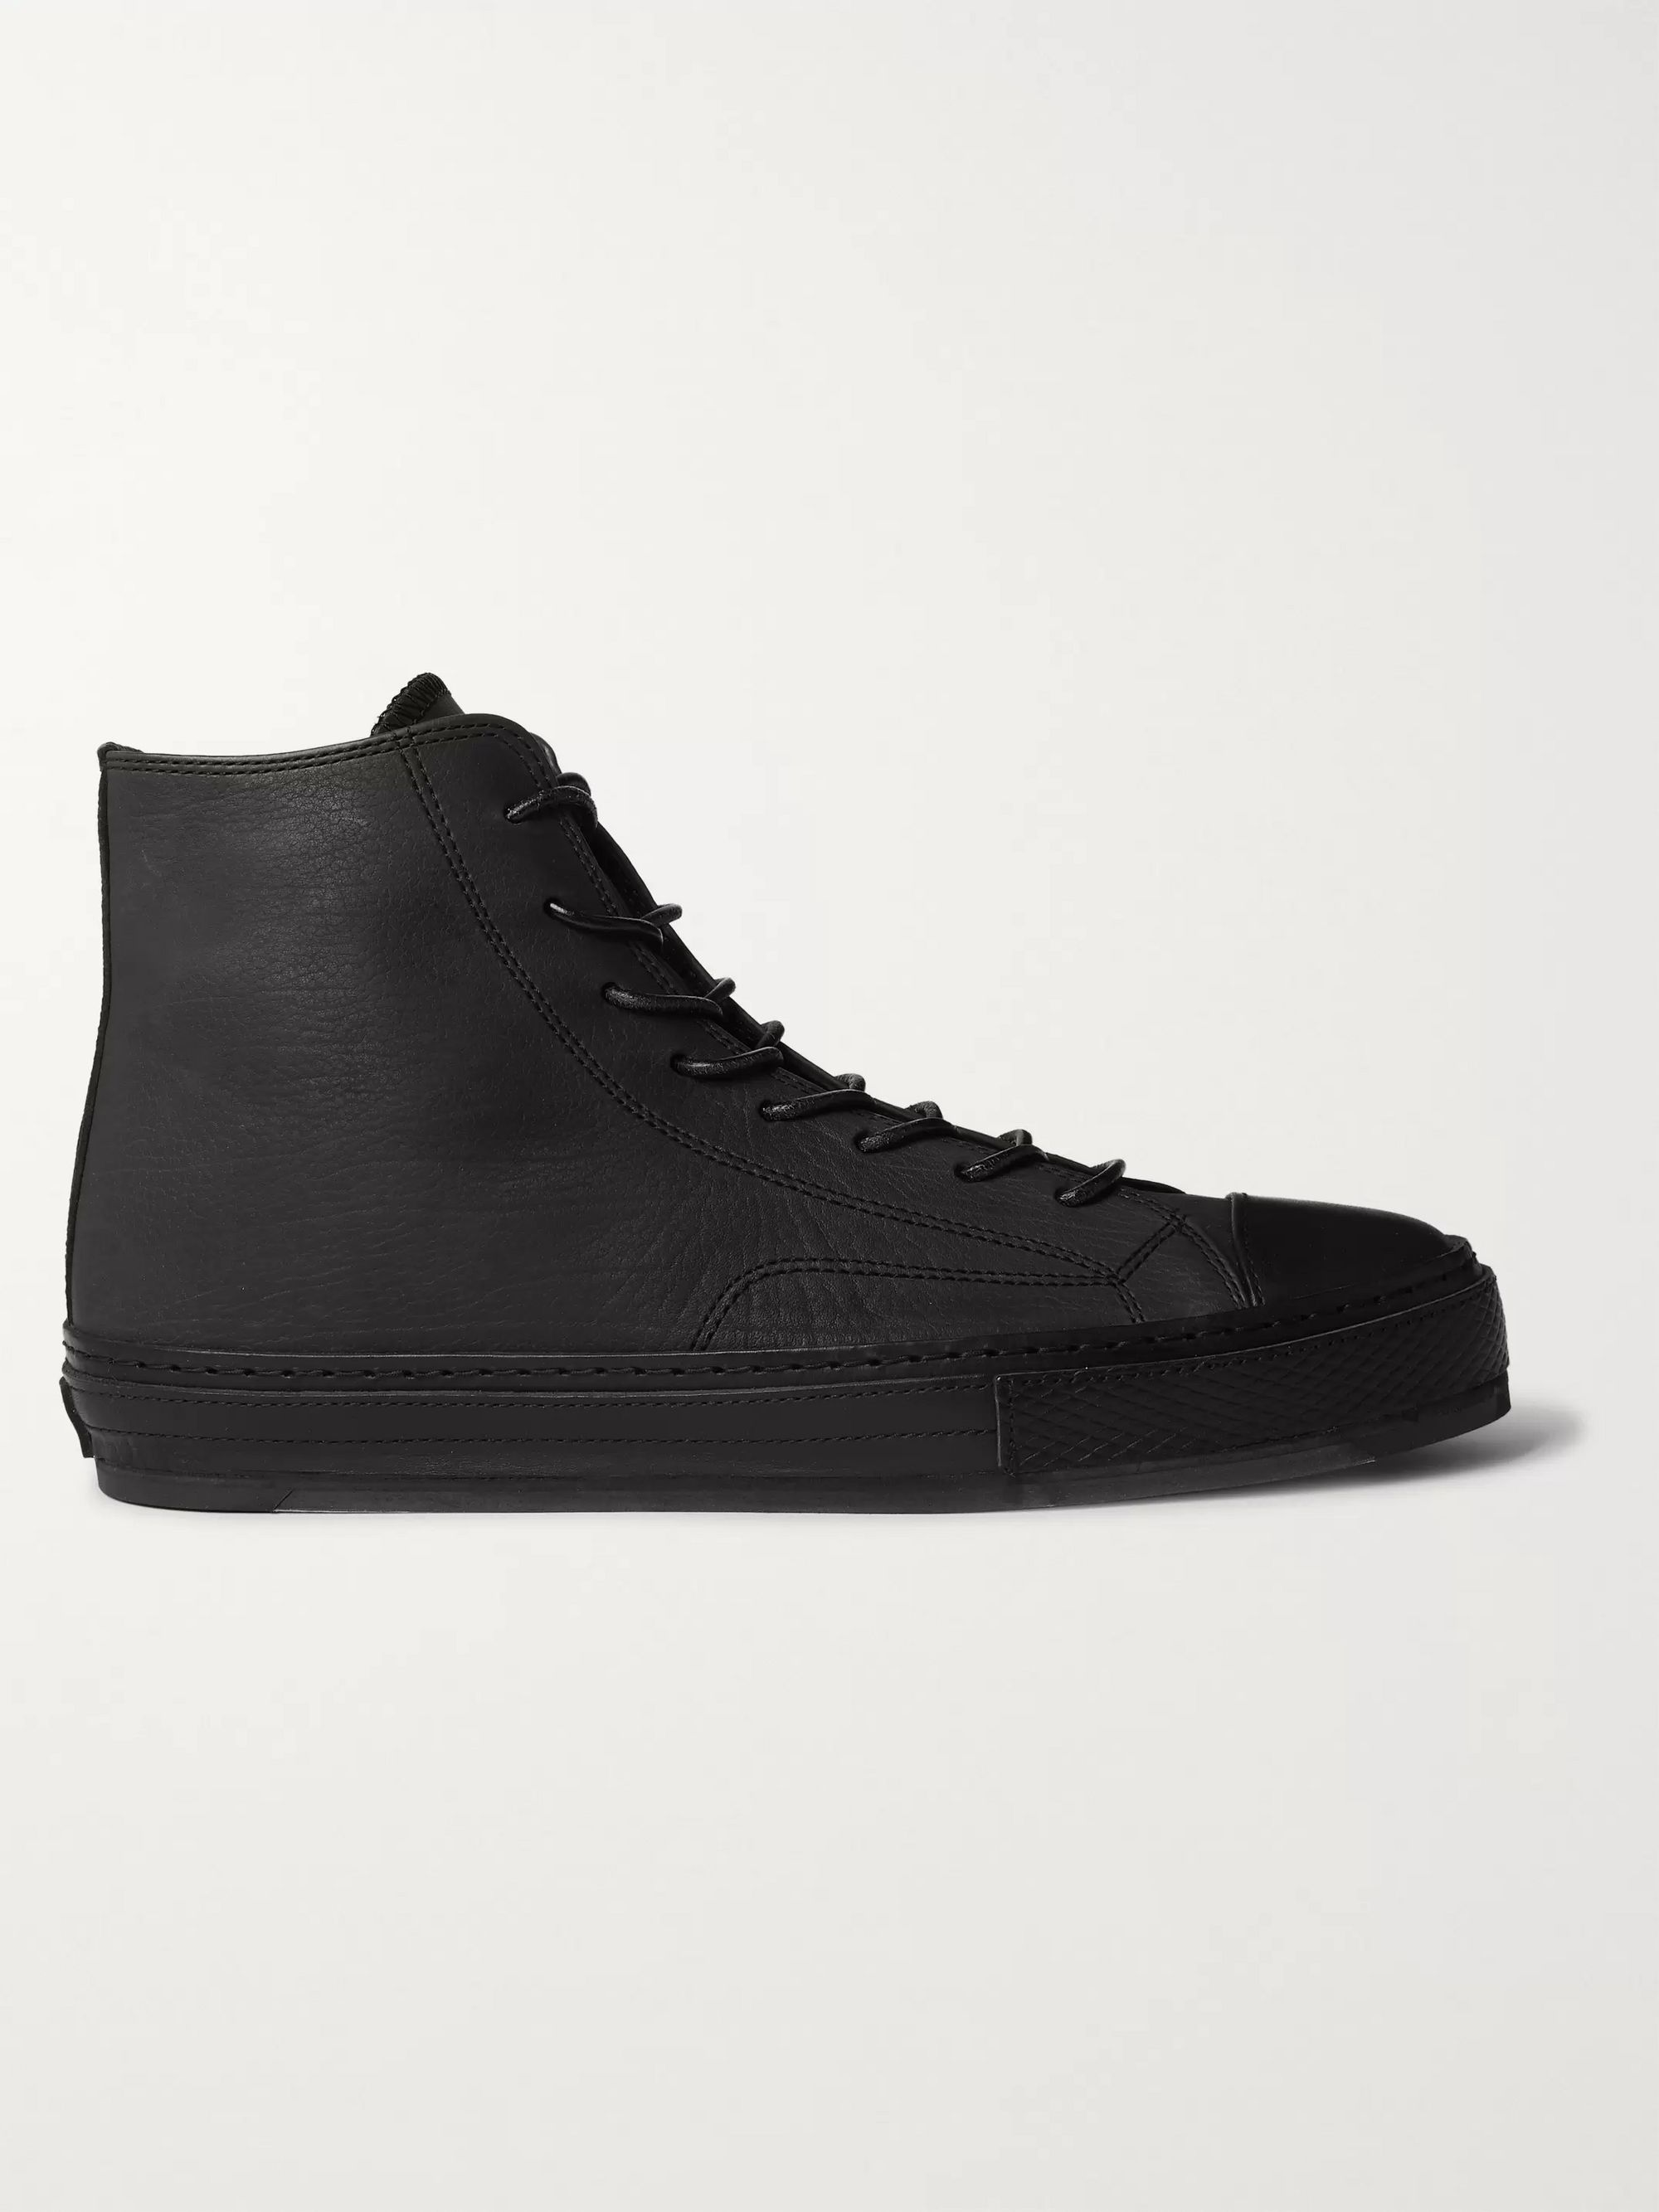 Hender Scheme Full-Grain Leather High-Top Sneakers